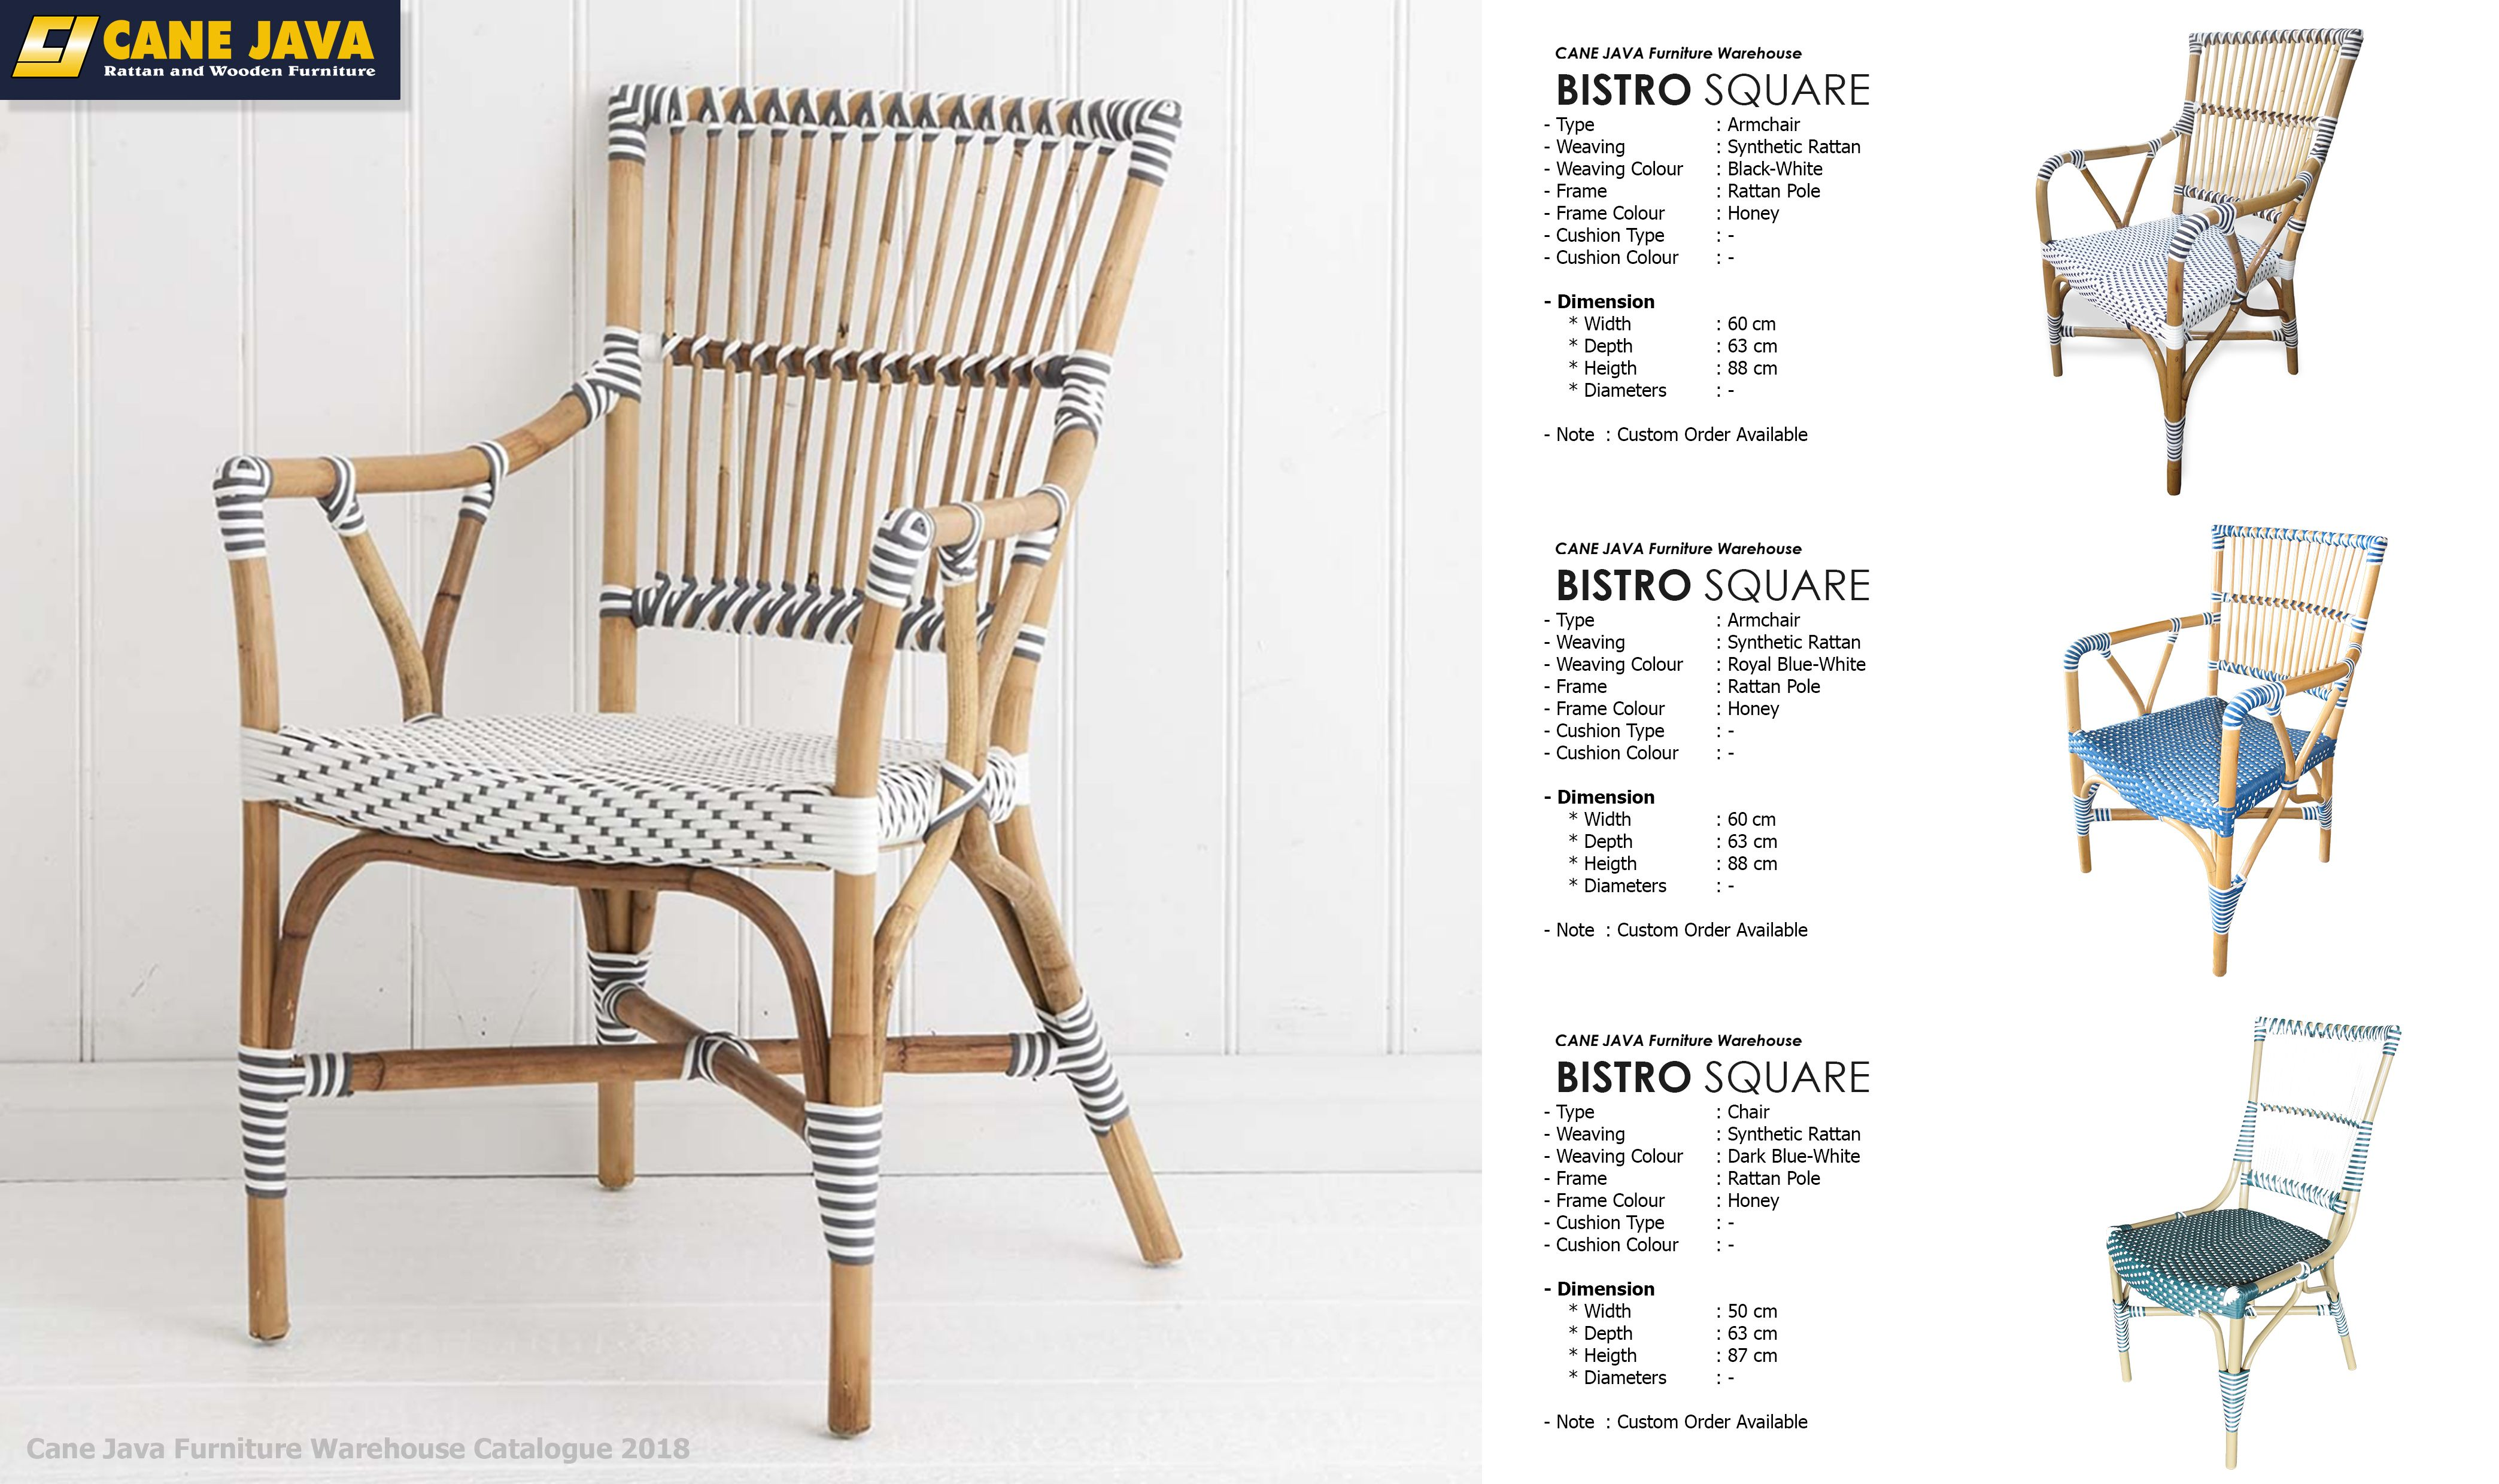 Pin By Cane Java Australia On Dining Rooms French Bistro Chairs